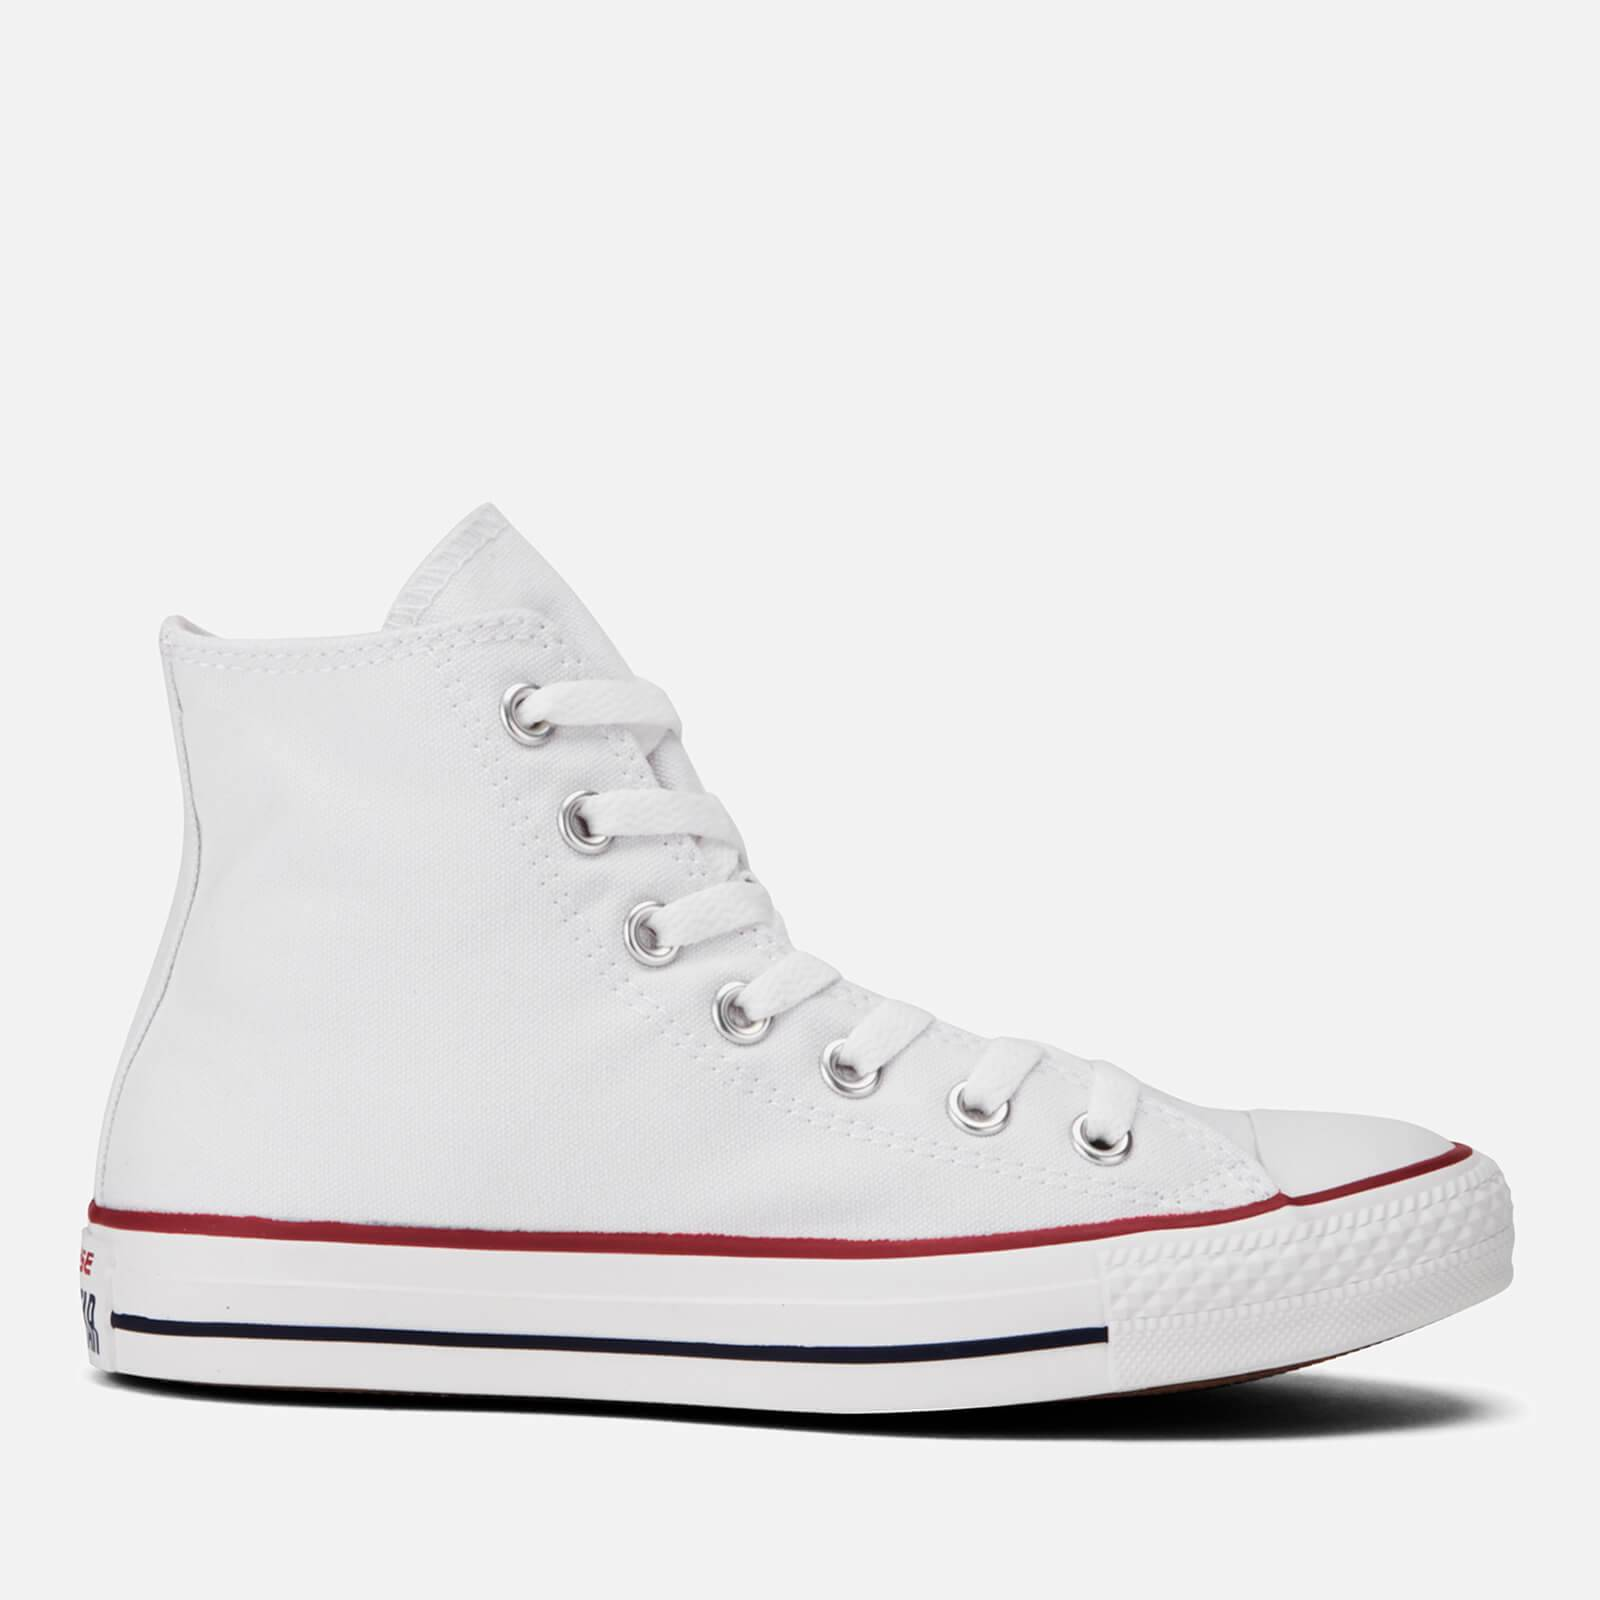 Converse Chuck Taylor All Star Canvas Hi-Top Trainers - Optical White - UK 9